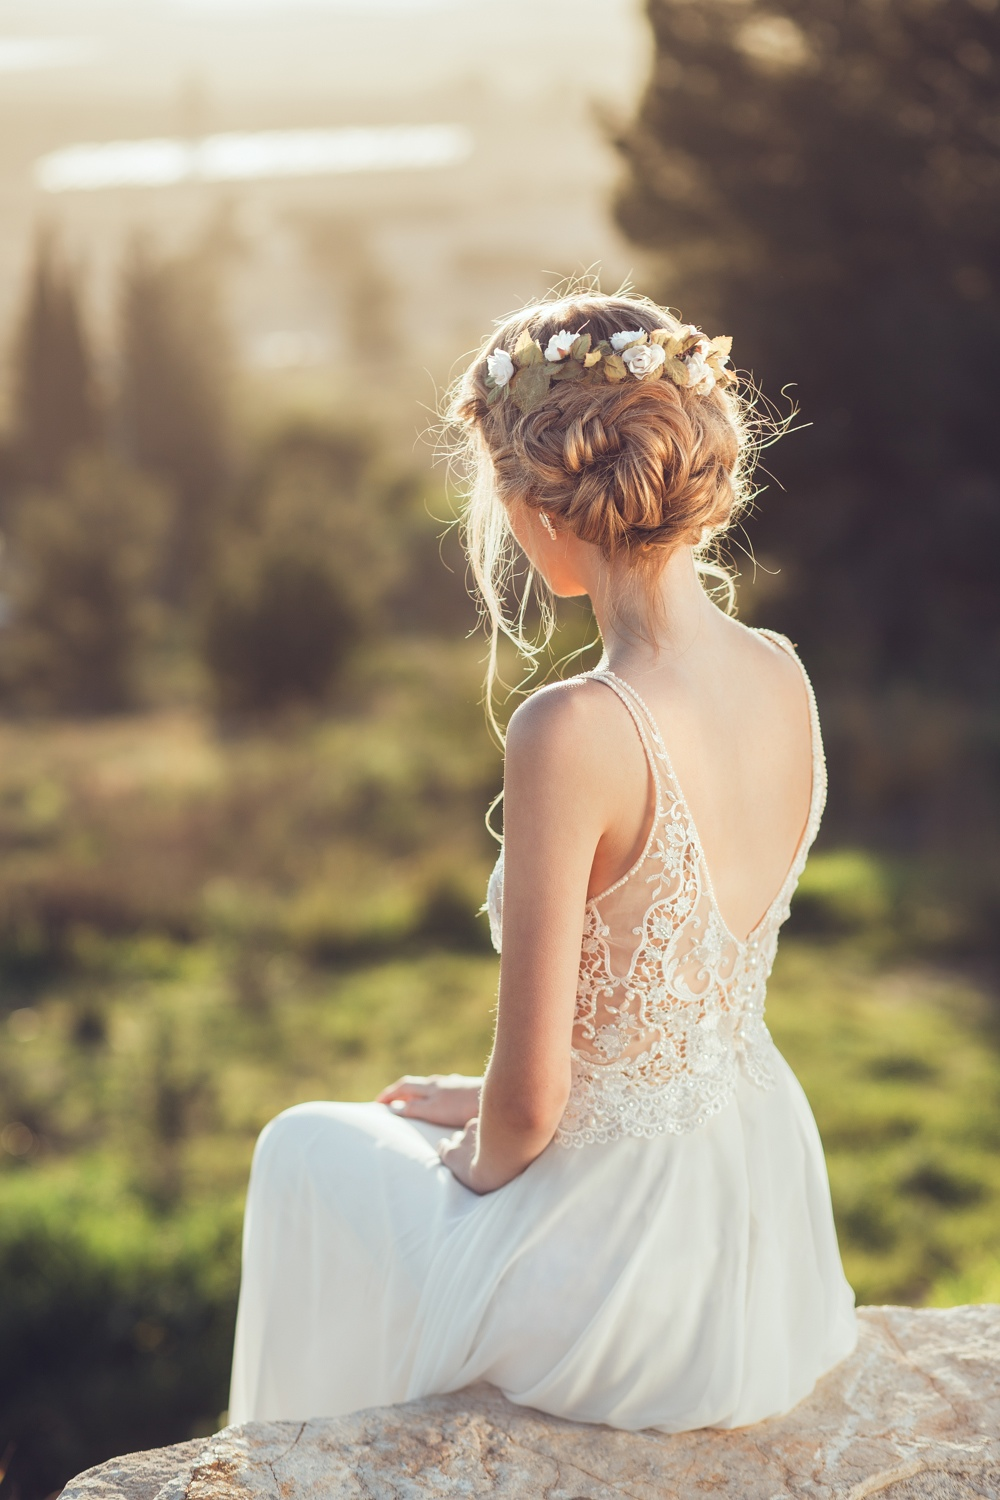 15 Wedding Hairstyles For Long Hair That Steal The Show: 20 Wedding Hairstyles For A Romantic-Glam Look